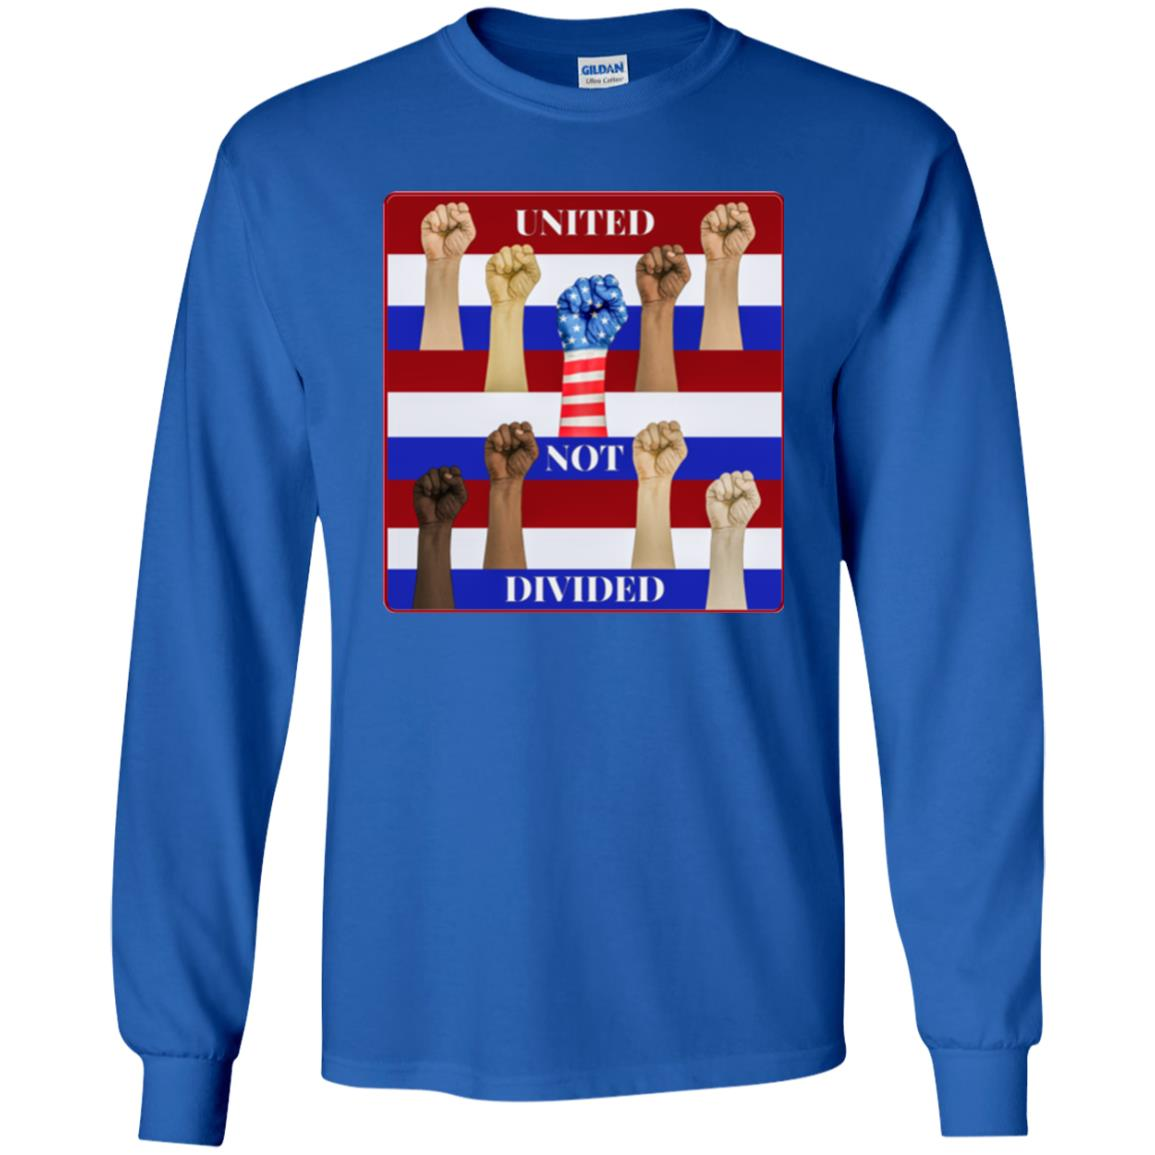 united not divided - Youth Long Sleeve T-Shirt